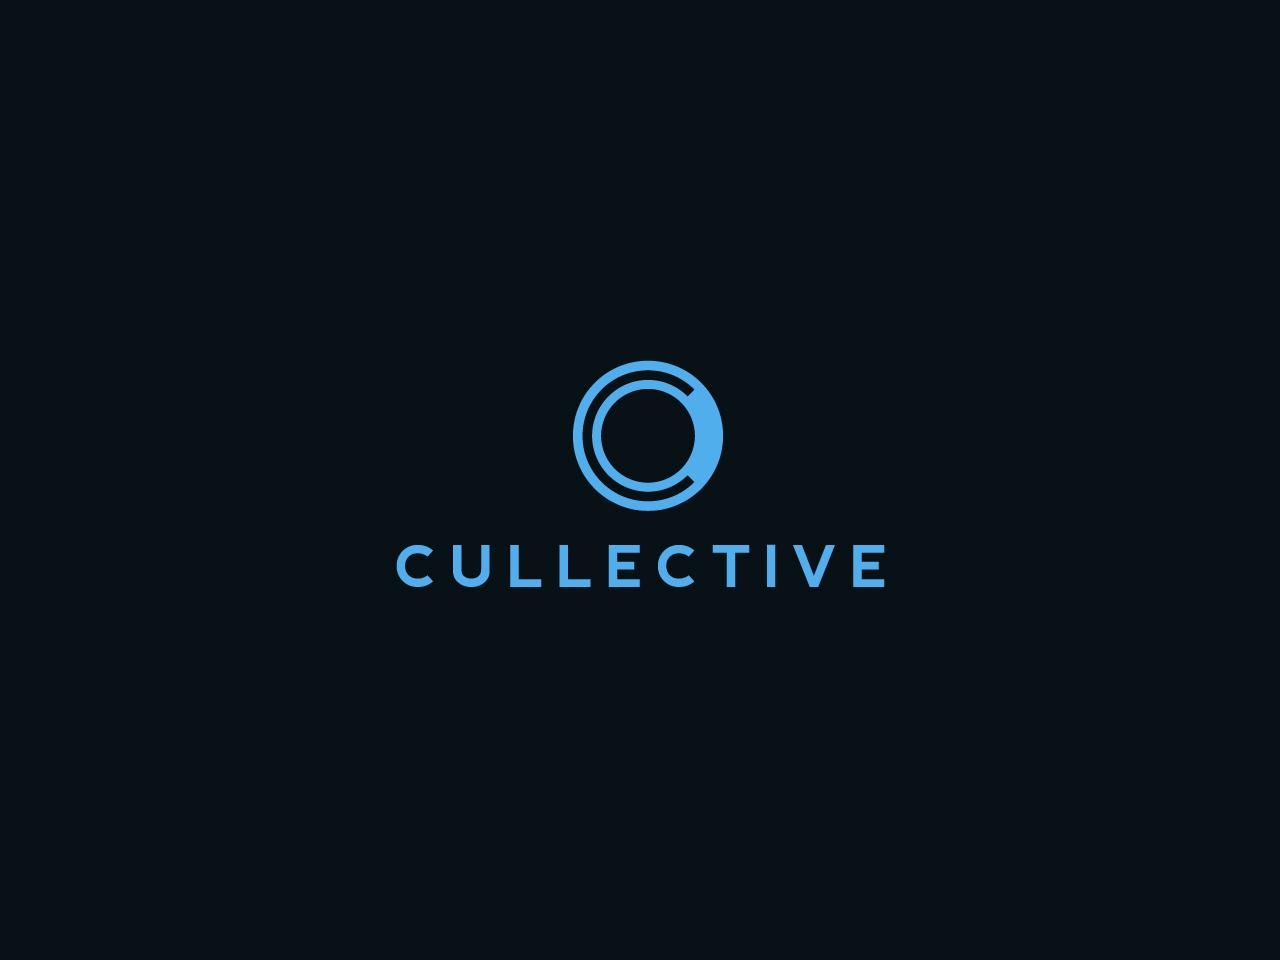 Cullective